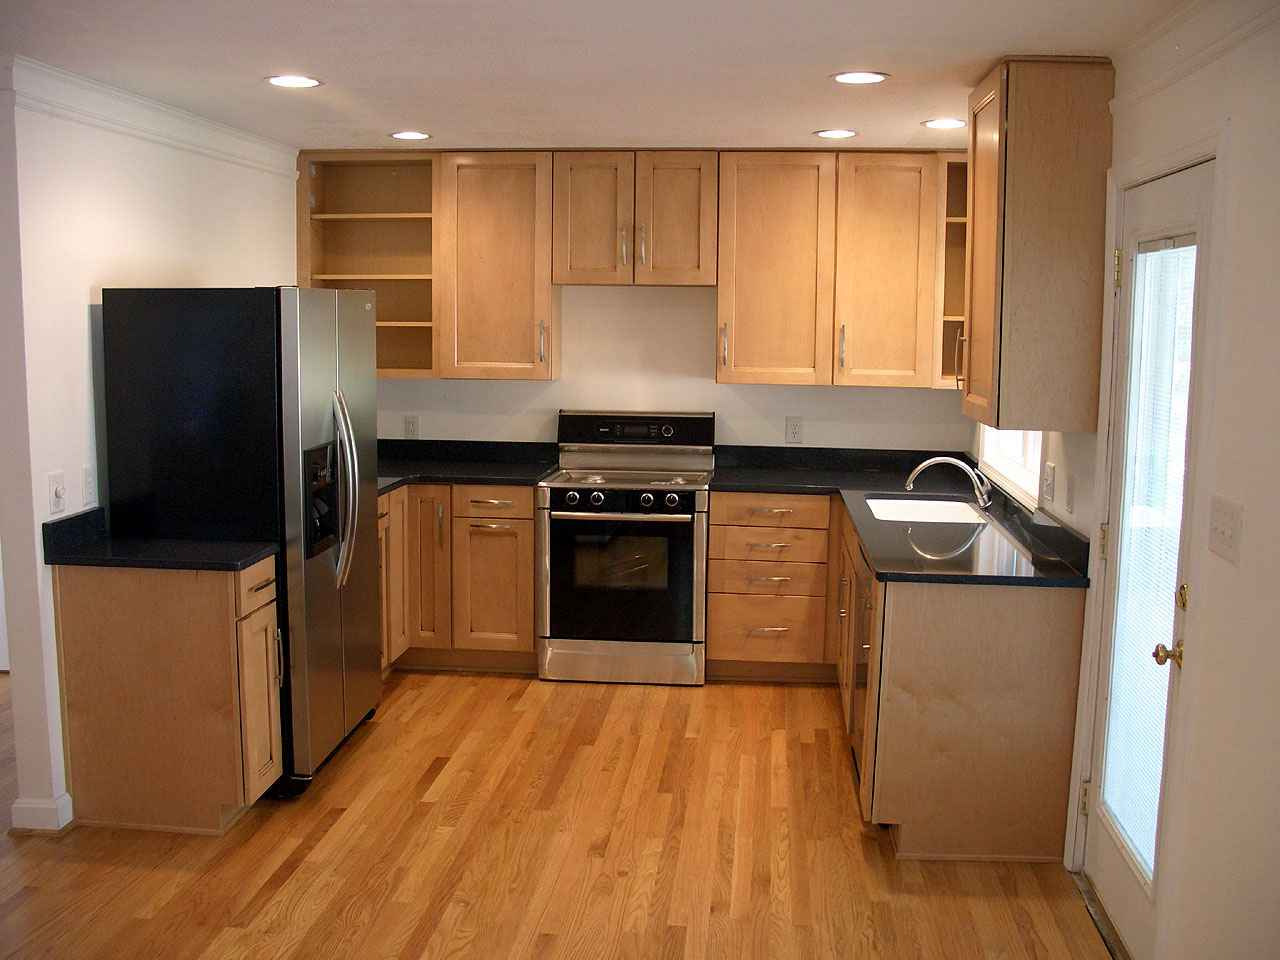 Cheap cabinets for kitchens shopping tips for Small kitchen cabinets